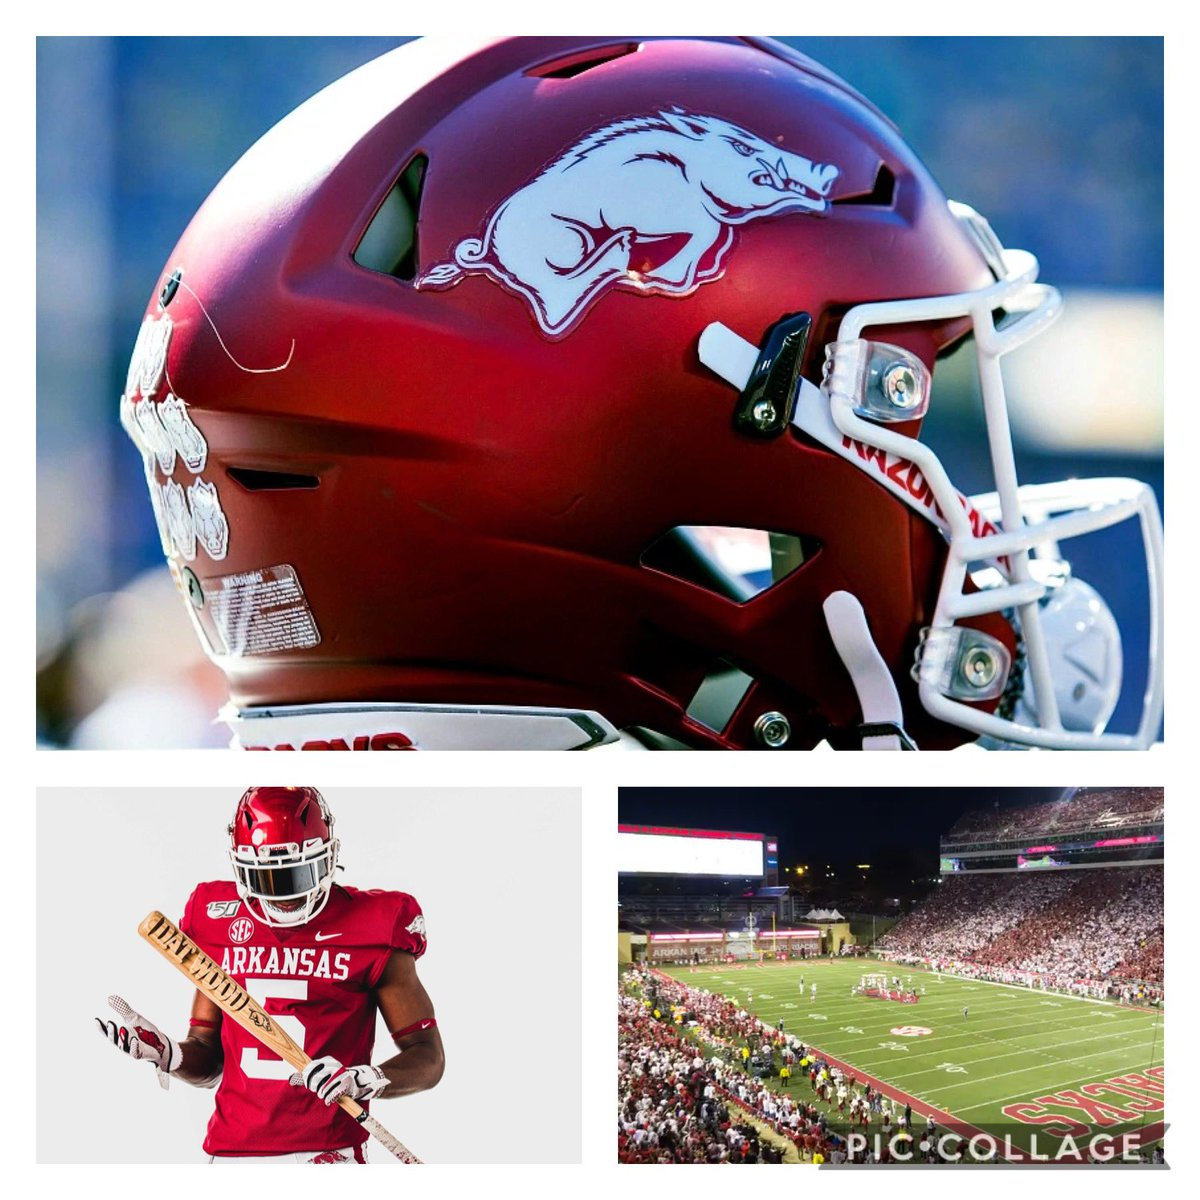 WOWWWW!!!!  Blessed and Honored to receive my 4th offer!!!!!   @CoachGuiton @kendalbriles @rshawn7520 @Coach__Call https://t.co/M6d8WI9hsZ